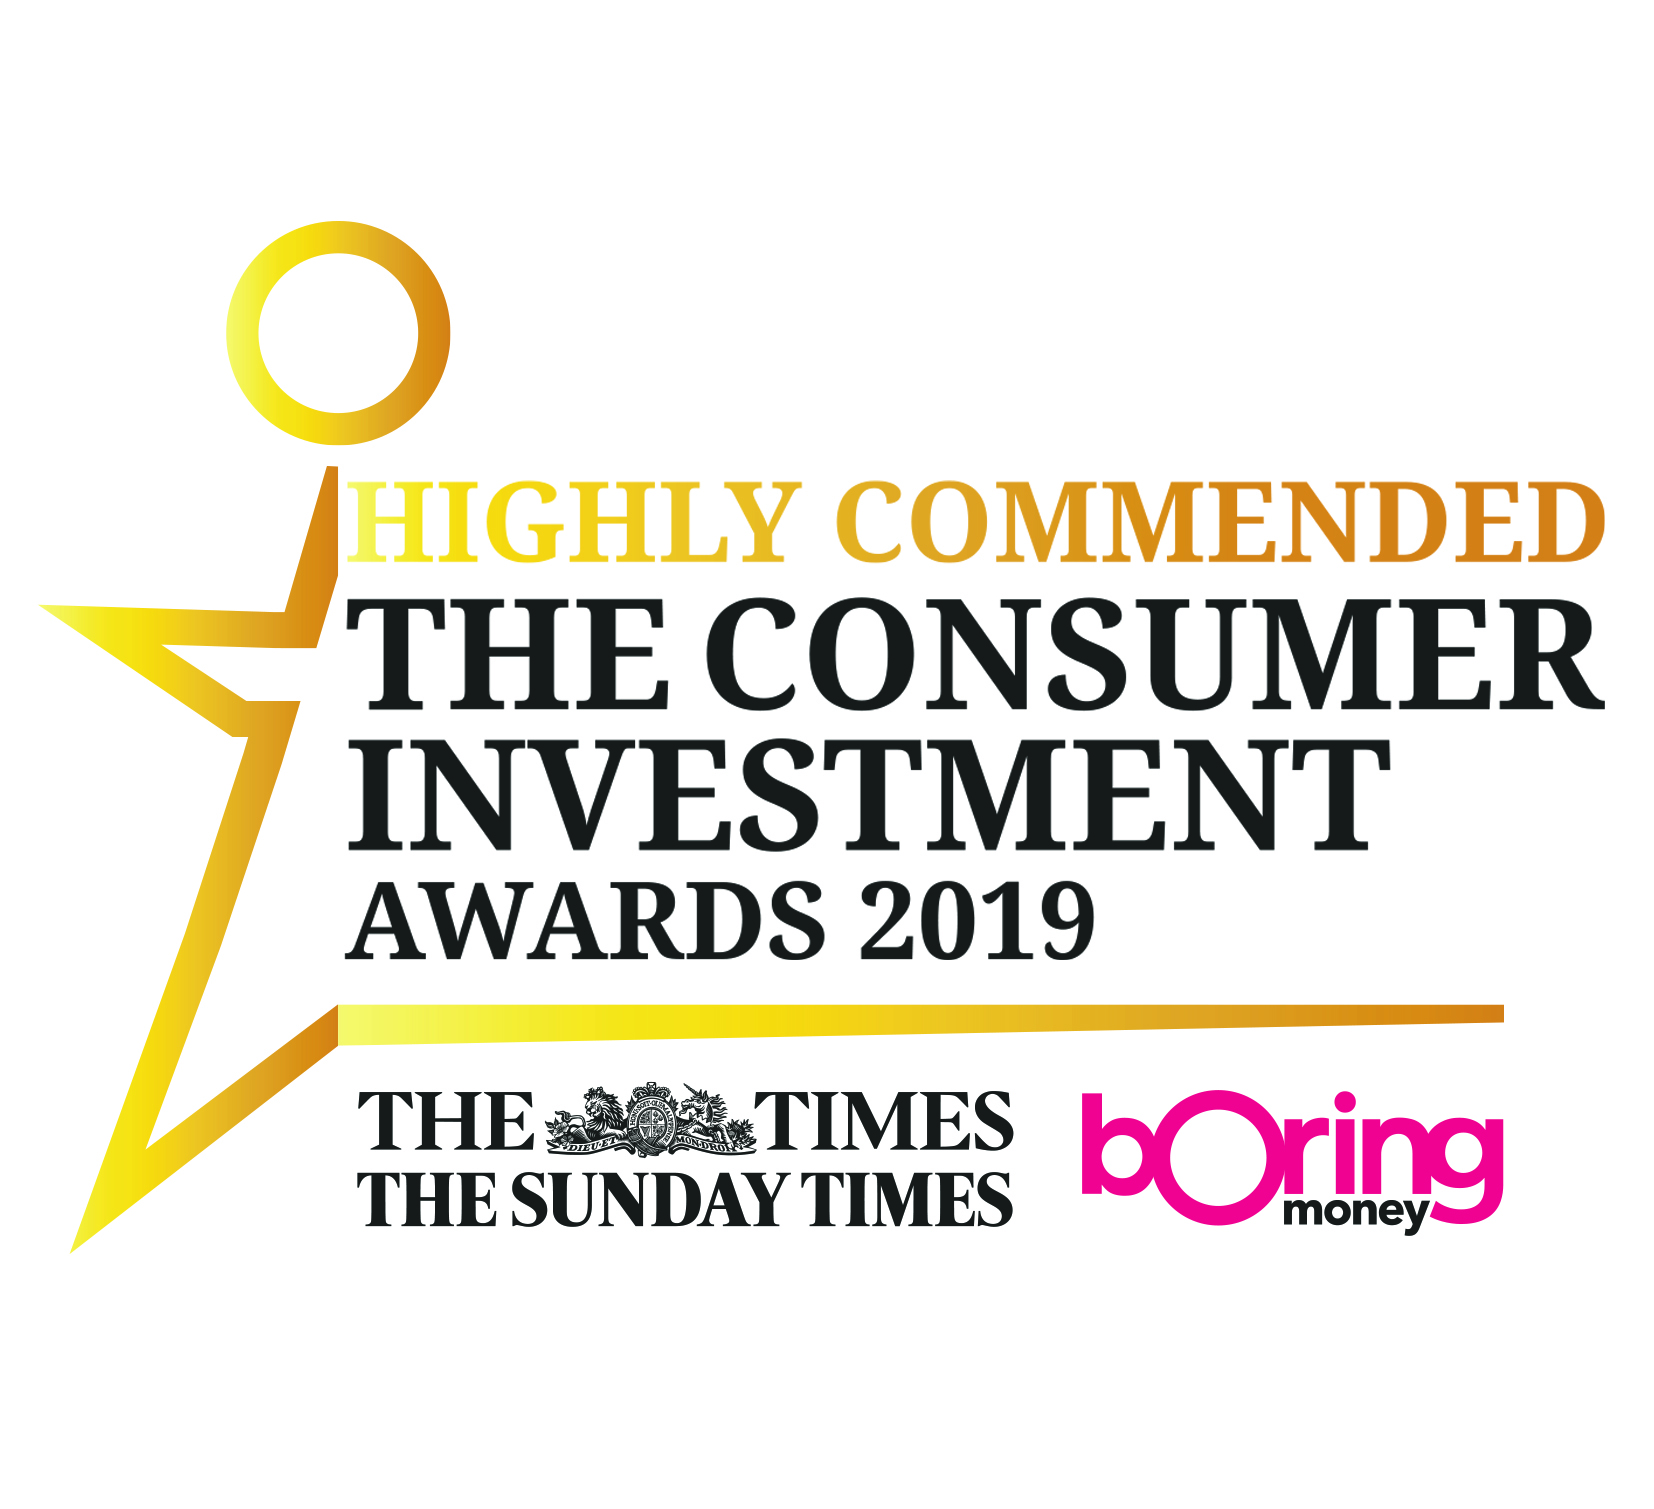 The Consumer Investment Awards - Highly Commended